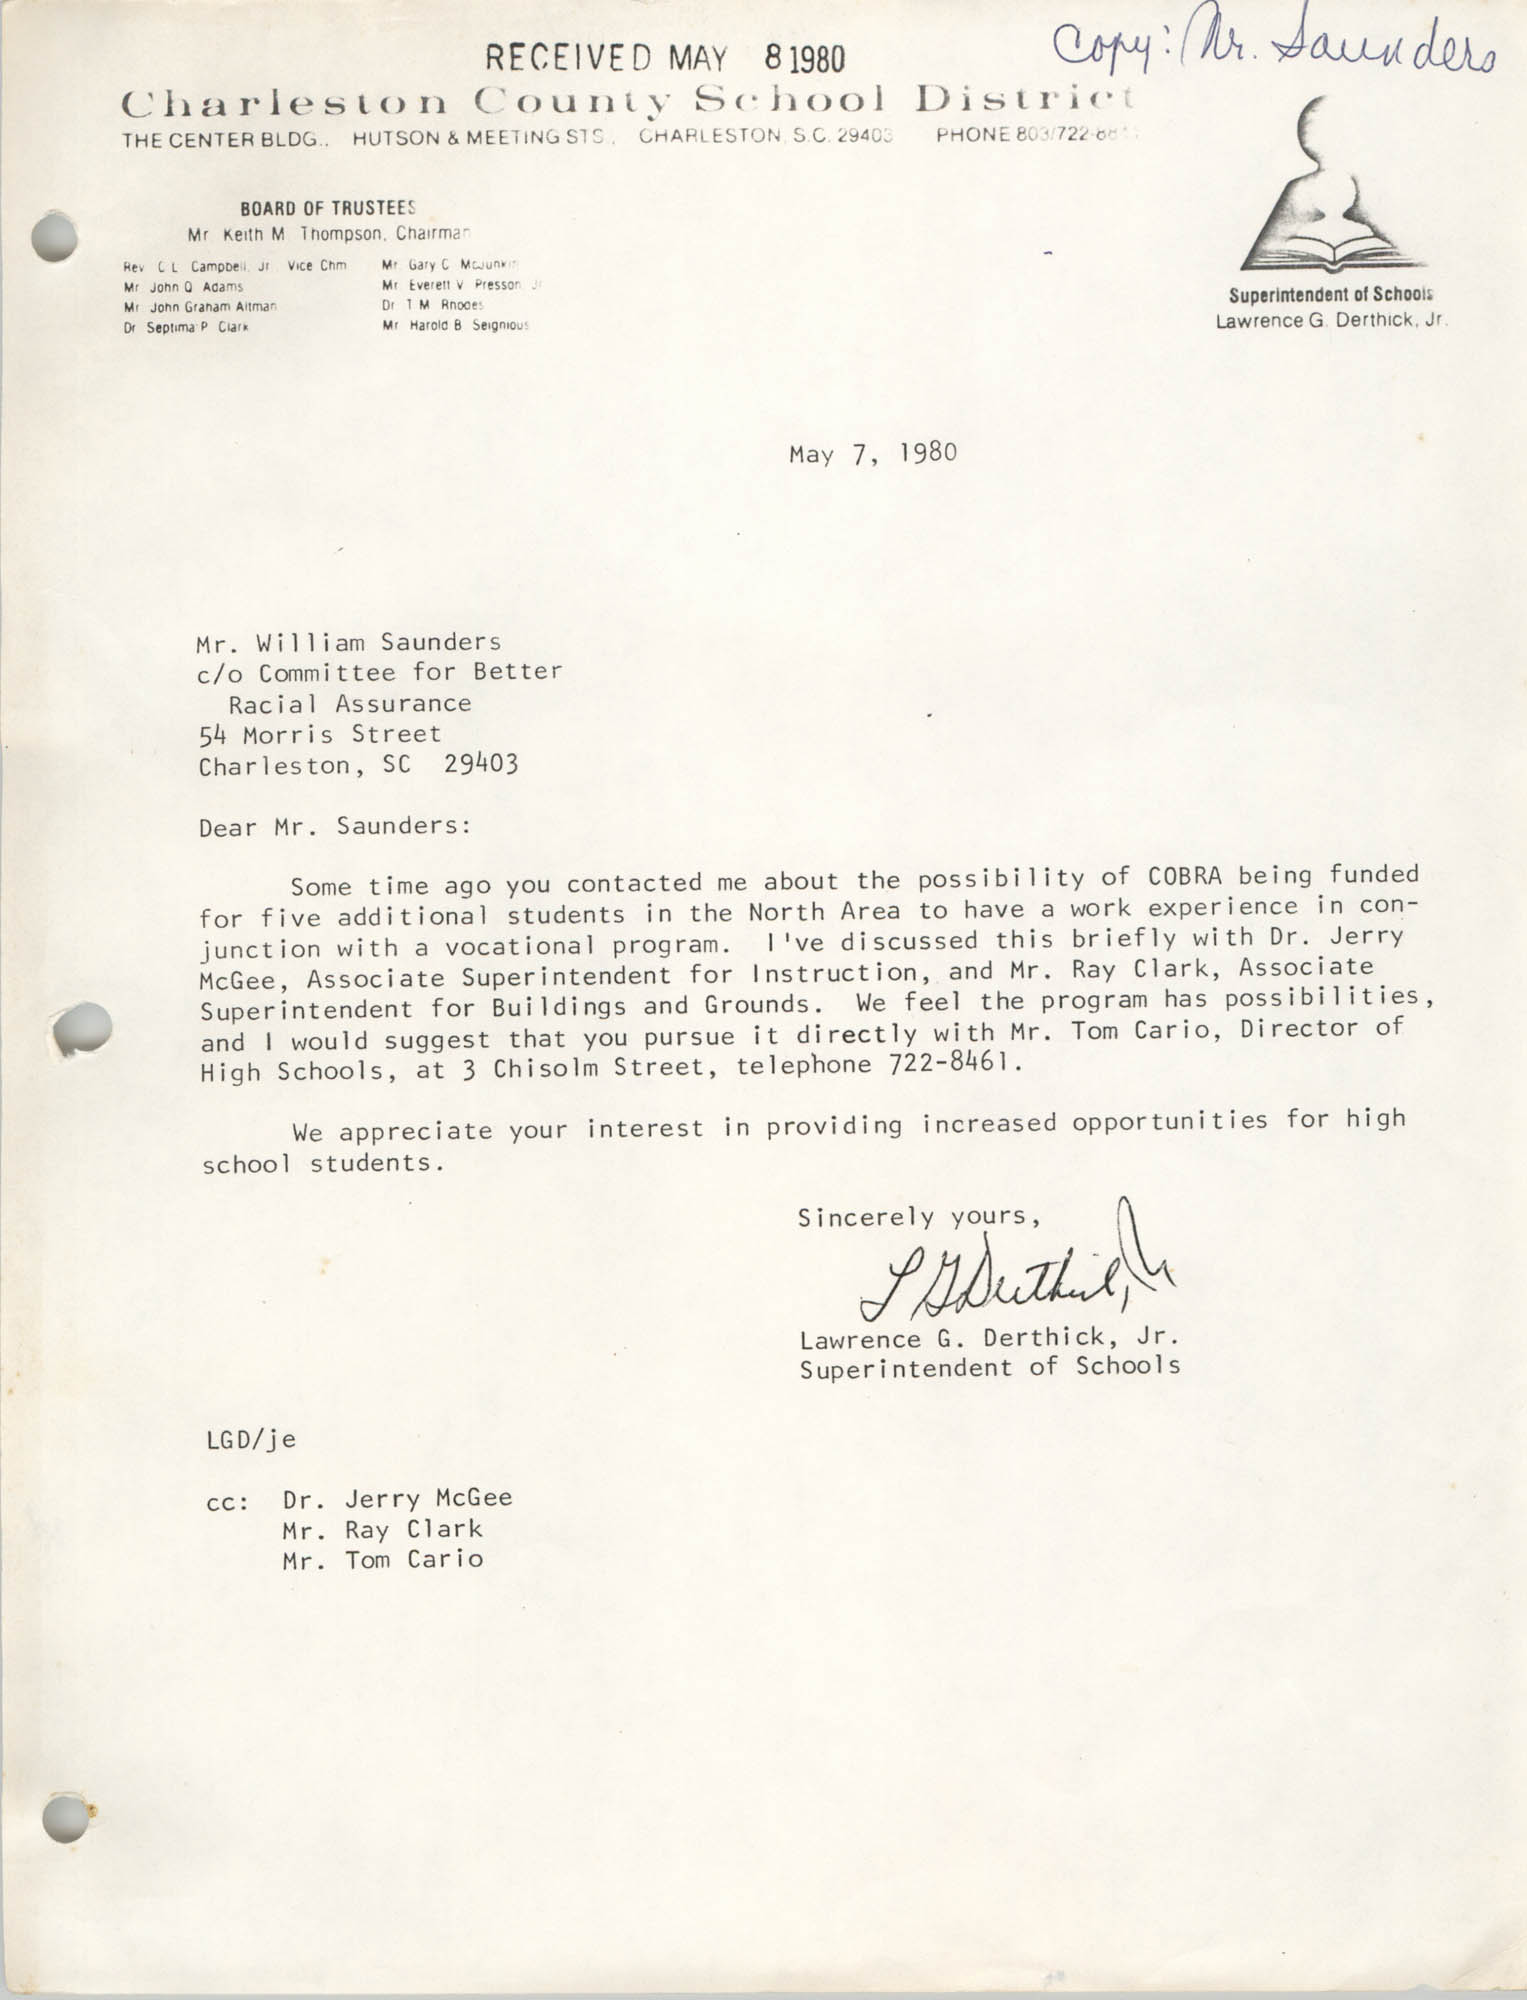 Letter from Lawrence G. Derthick, Jr. to William Saunders, May 7, 1980